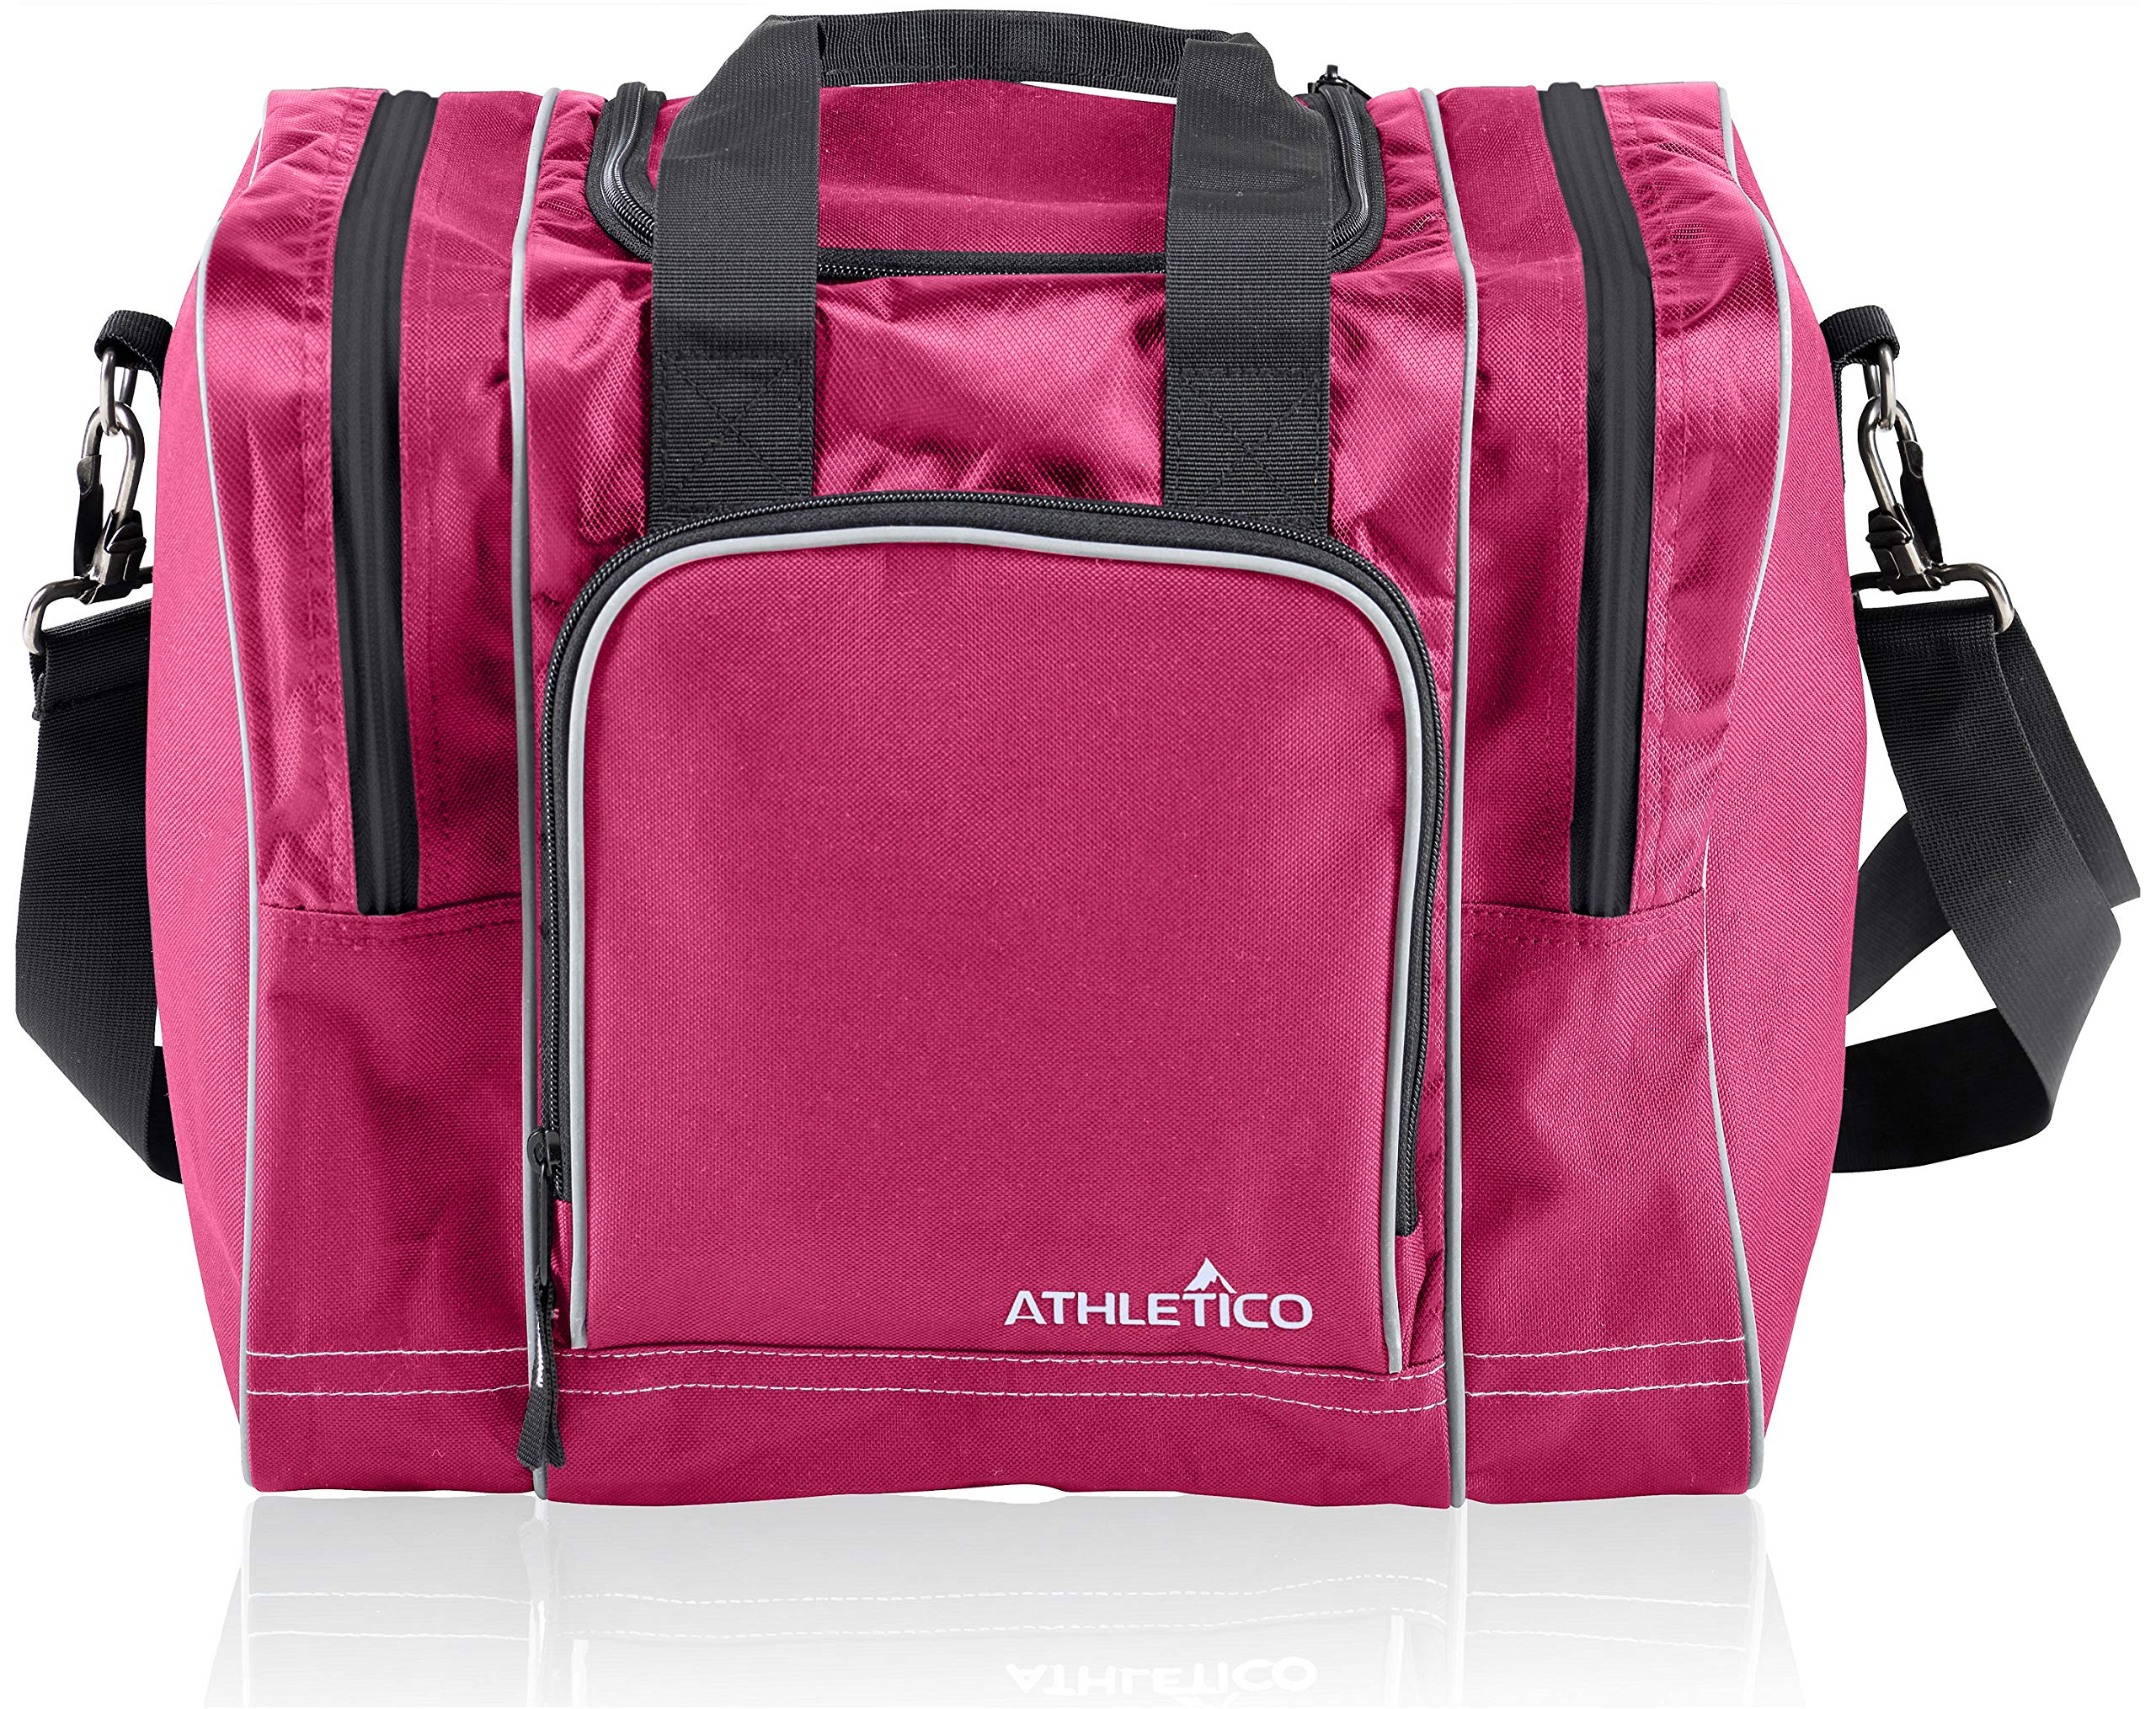 Athletico Bowling Bag for Single Ball - Single Ball Tote Bag with Padded Ball Holder - Fits a Single Pair of Bowling Shoes Up to Mens Size 14 (Pink) by Athletico